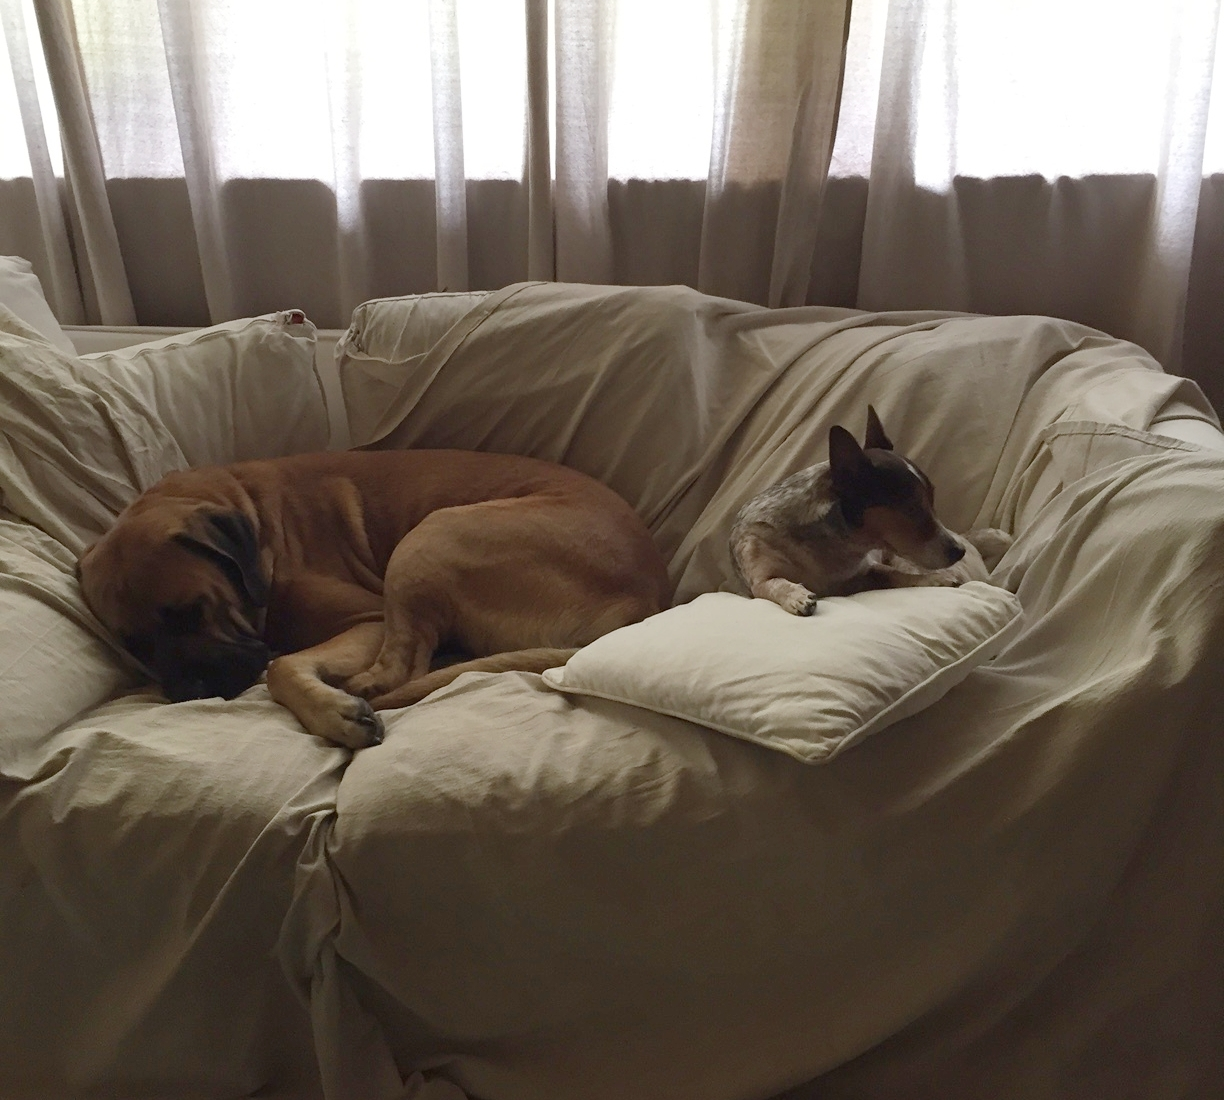 Bigly (on the left), and Loverboy (on the right), dozing on the couch in Karen's studio.  Thank goodness for drop-cloths!